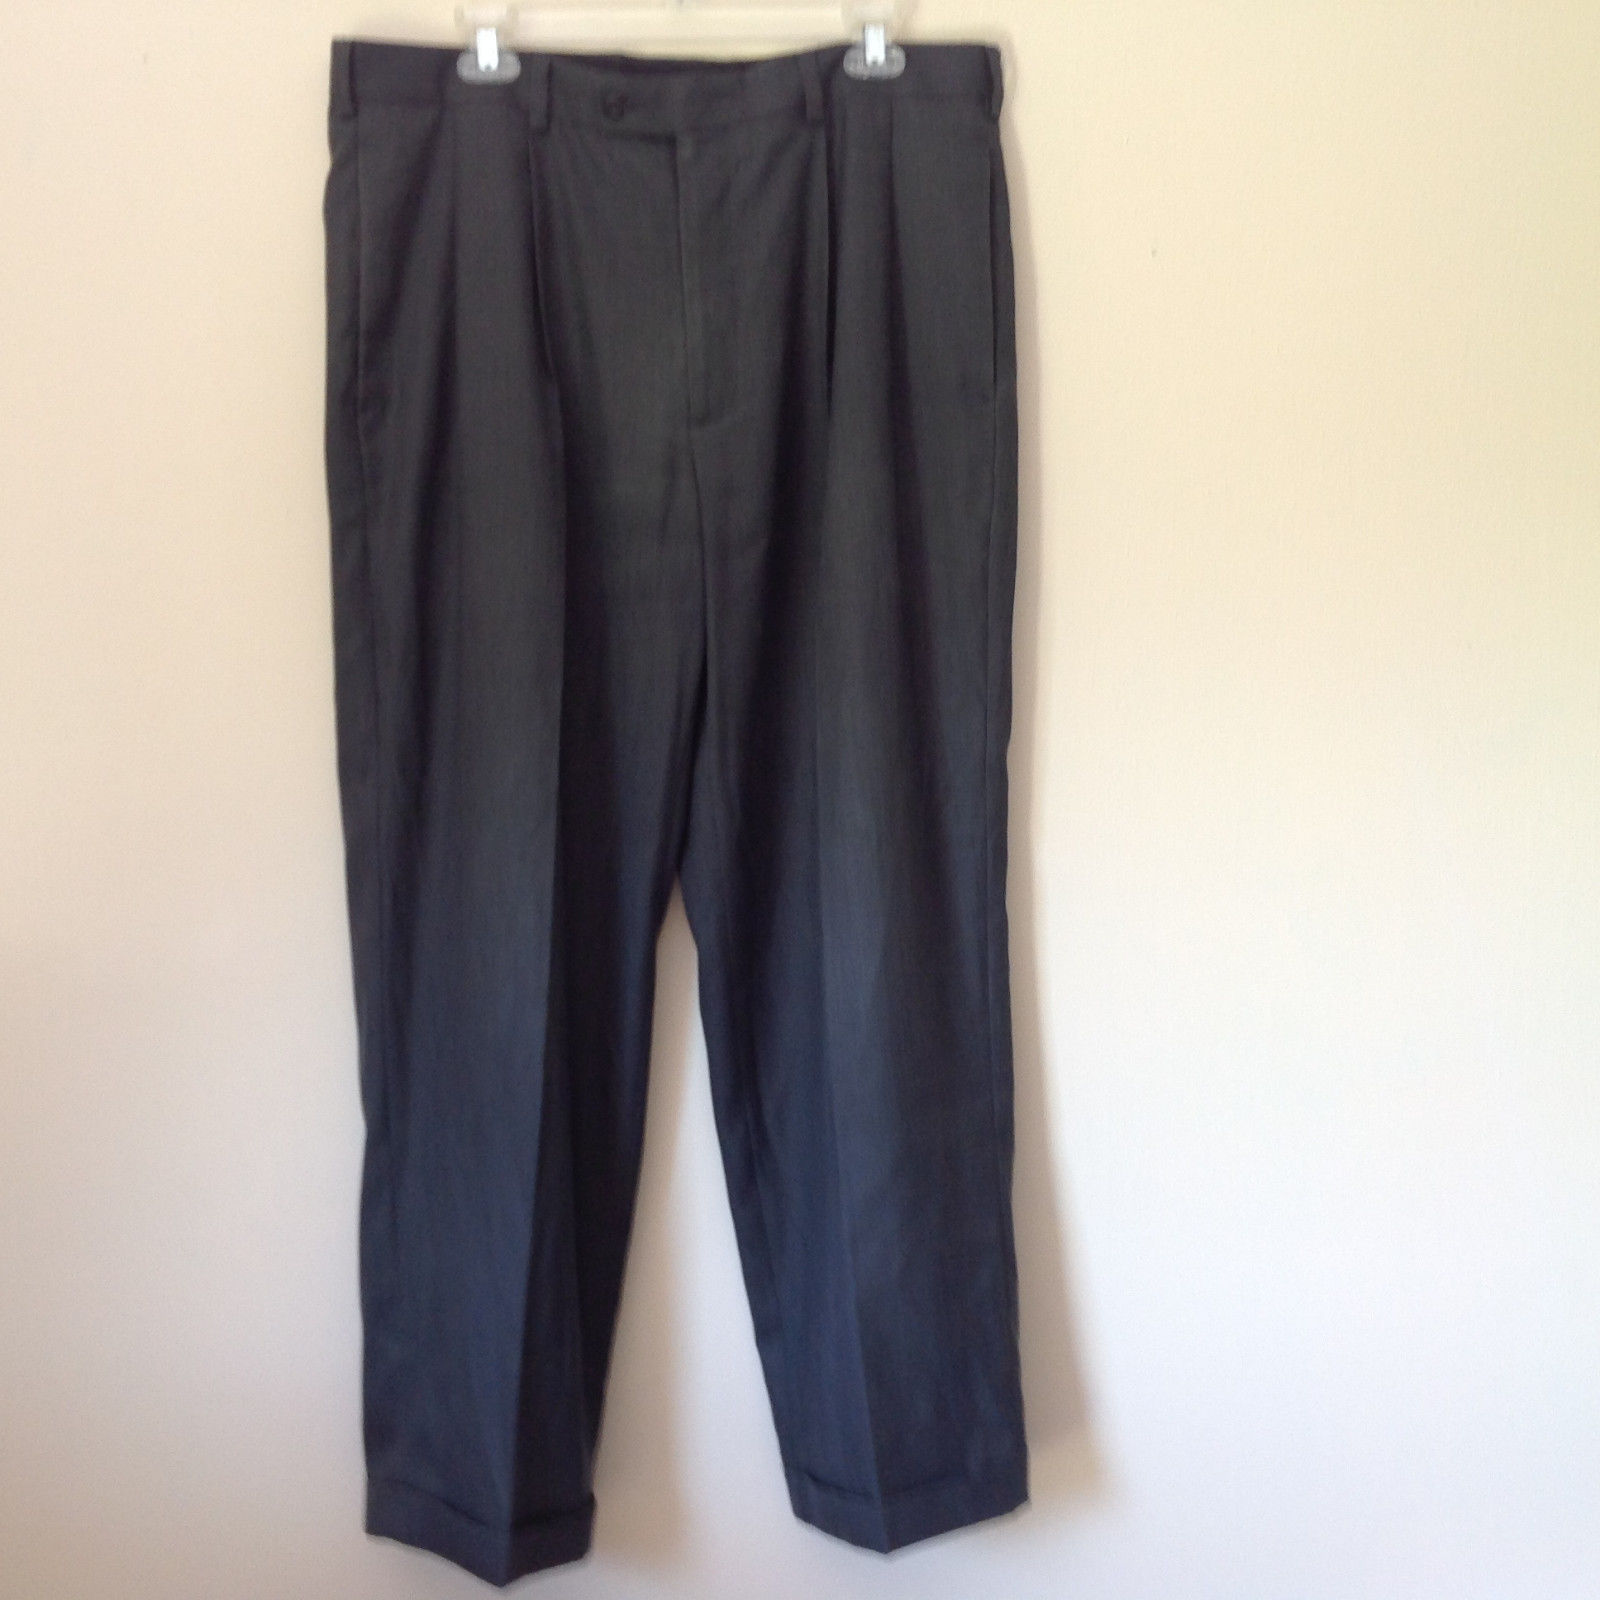 Dark Gray Dress Pants by Perry Ellis Portfolio Front Back Pockets Size 36 by 30